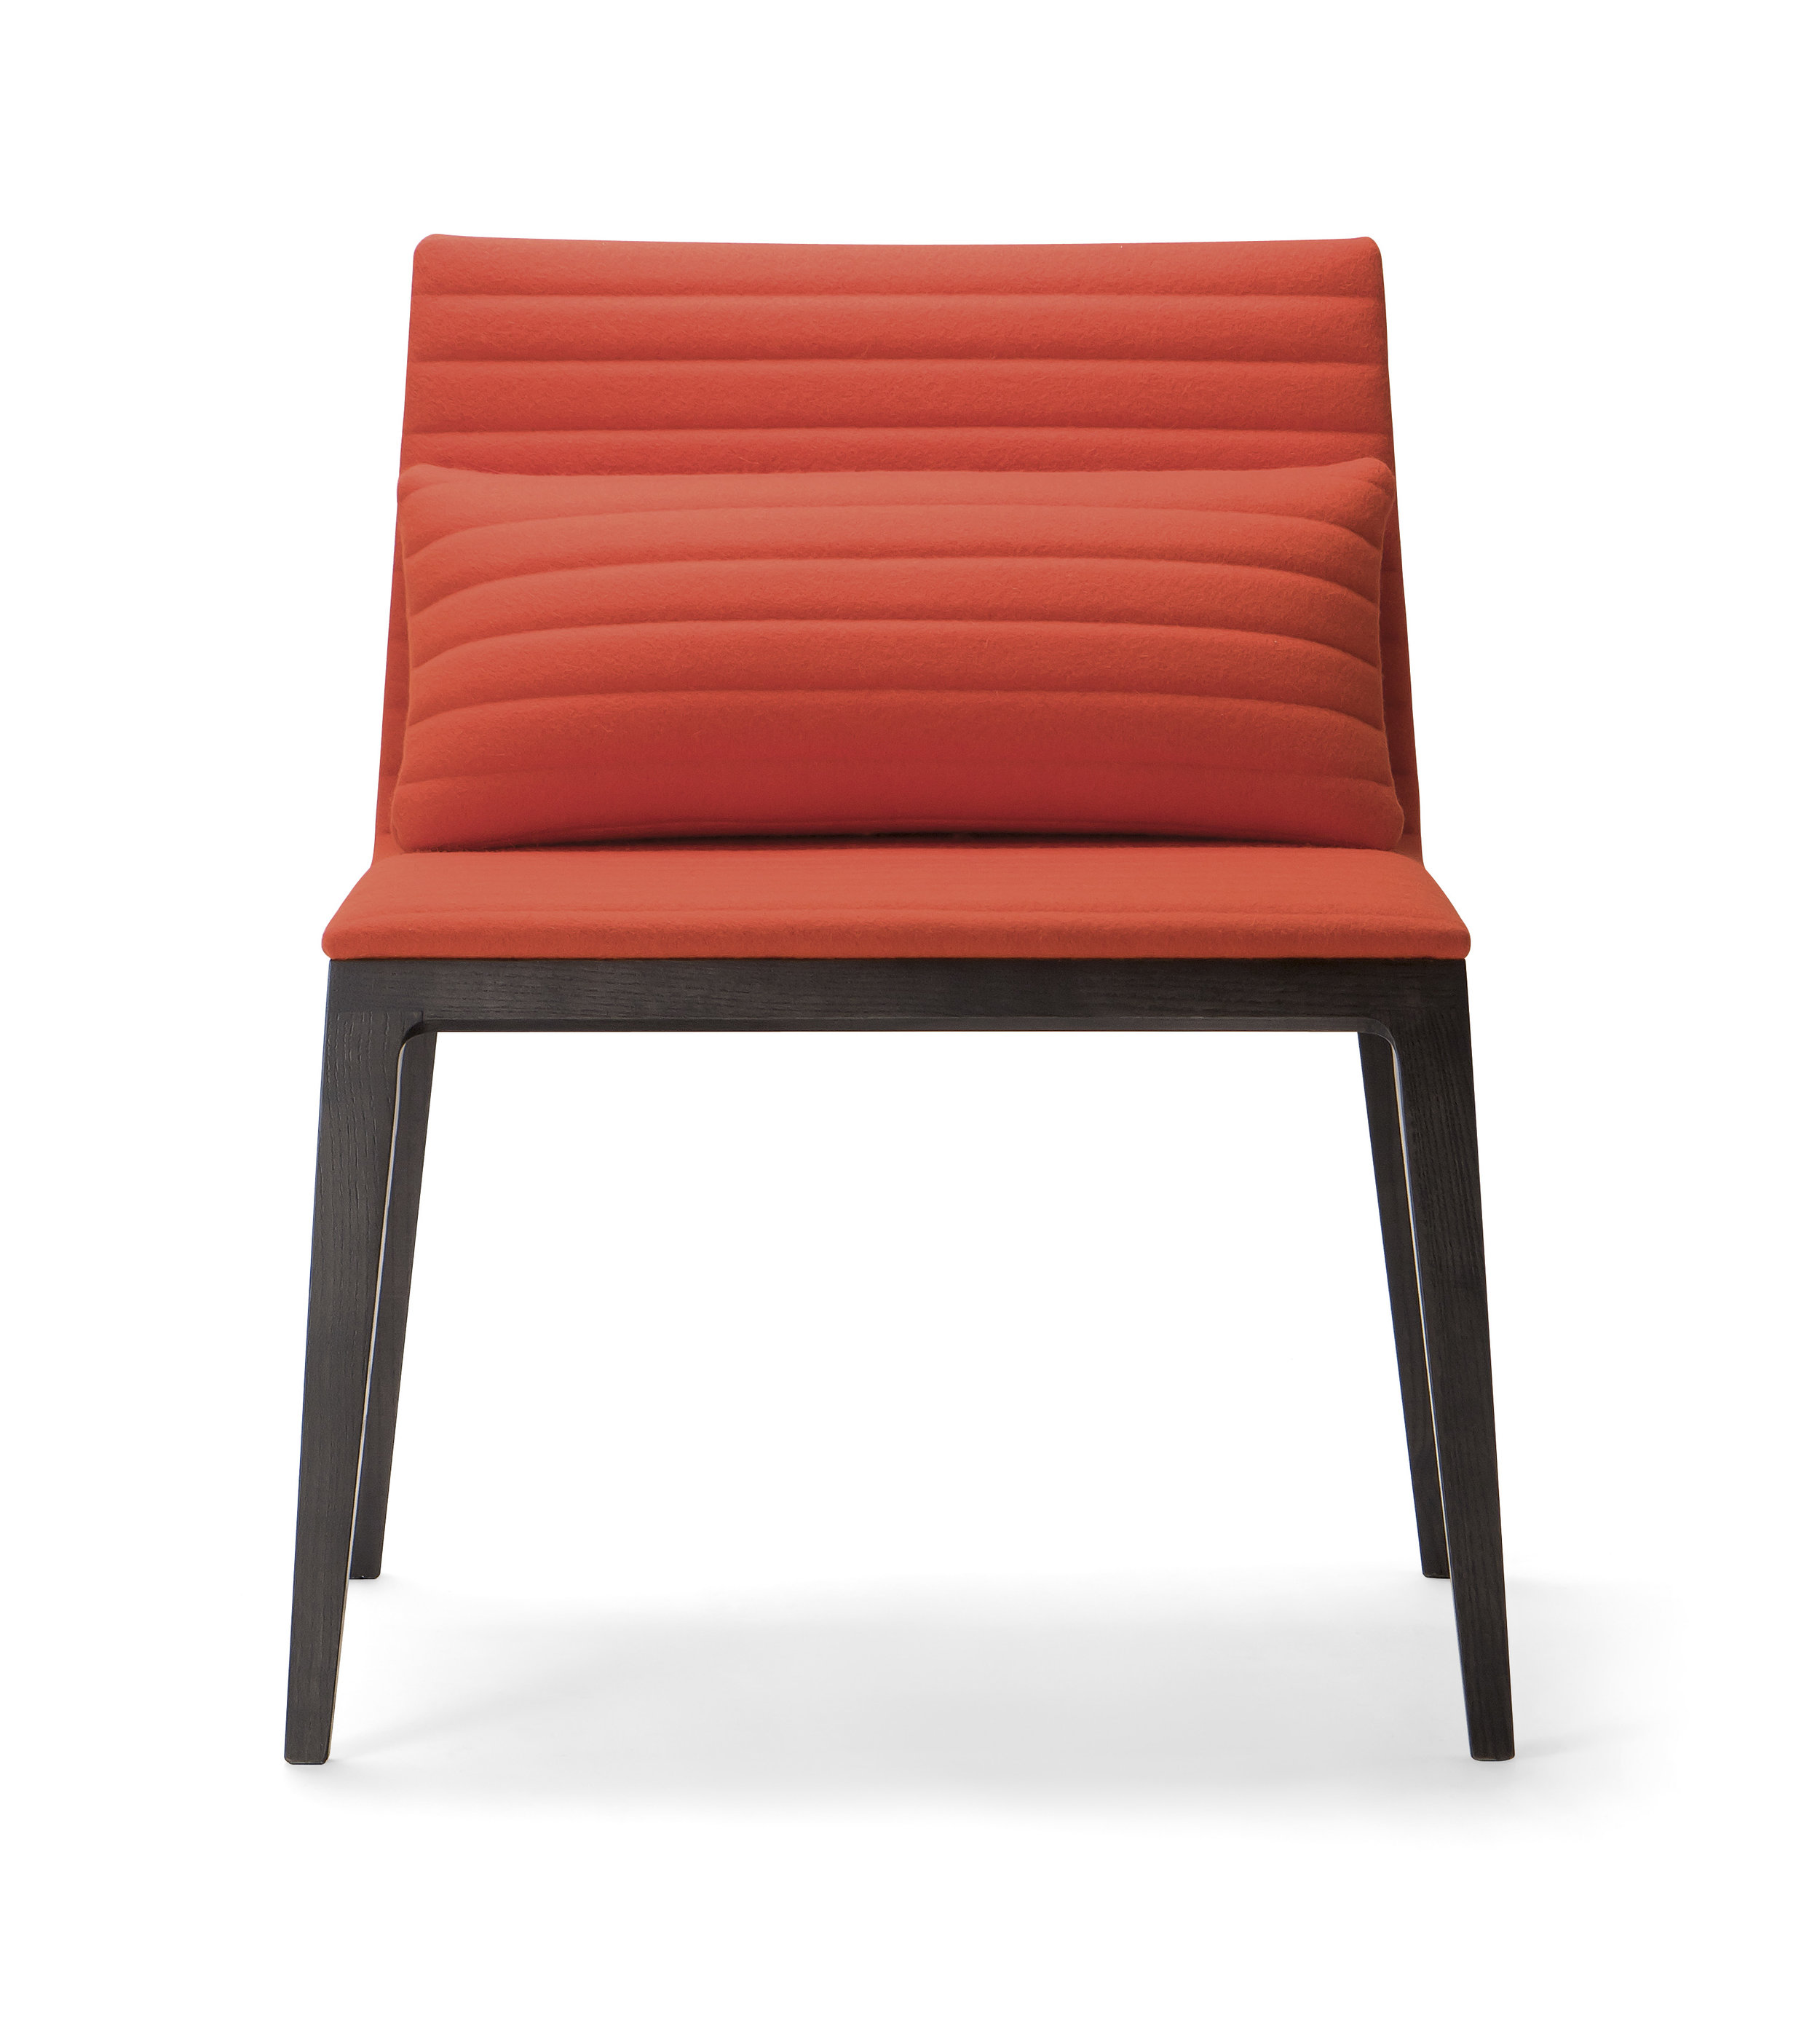 Coco Lounge Chair - Verti SRL